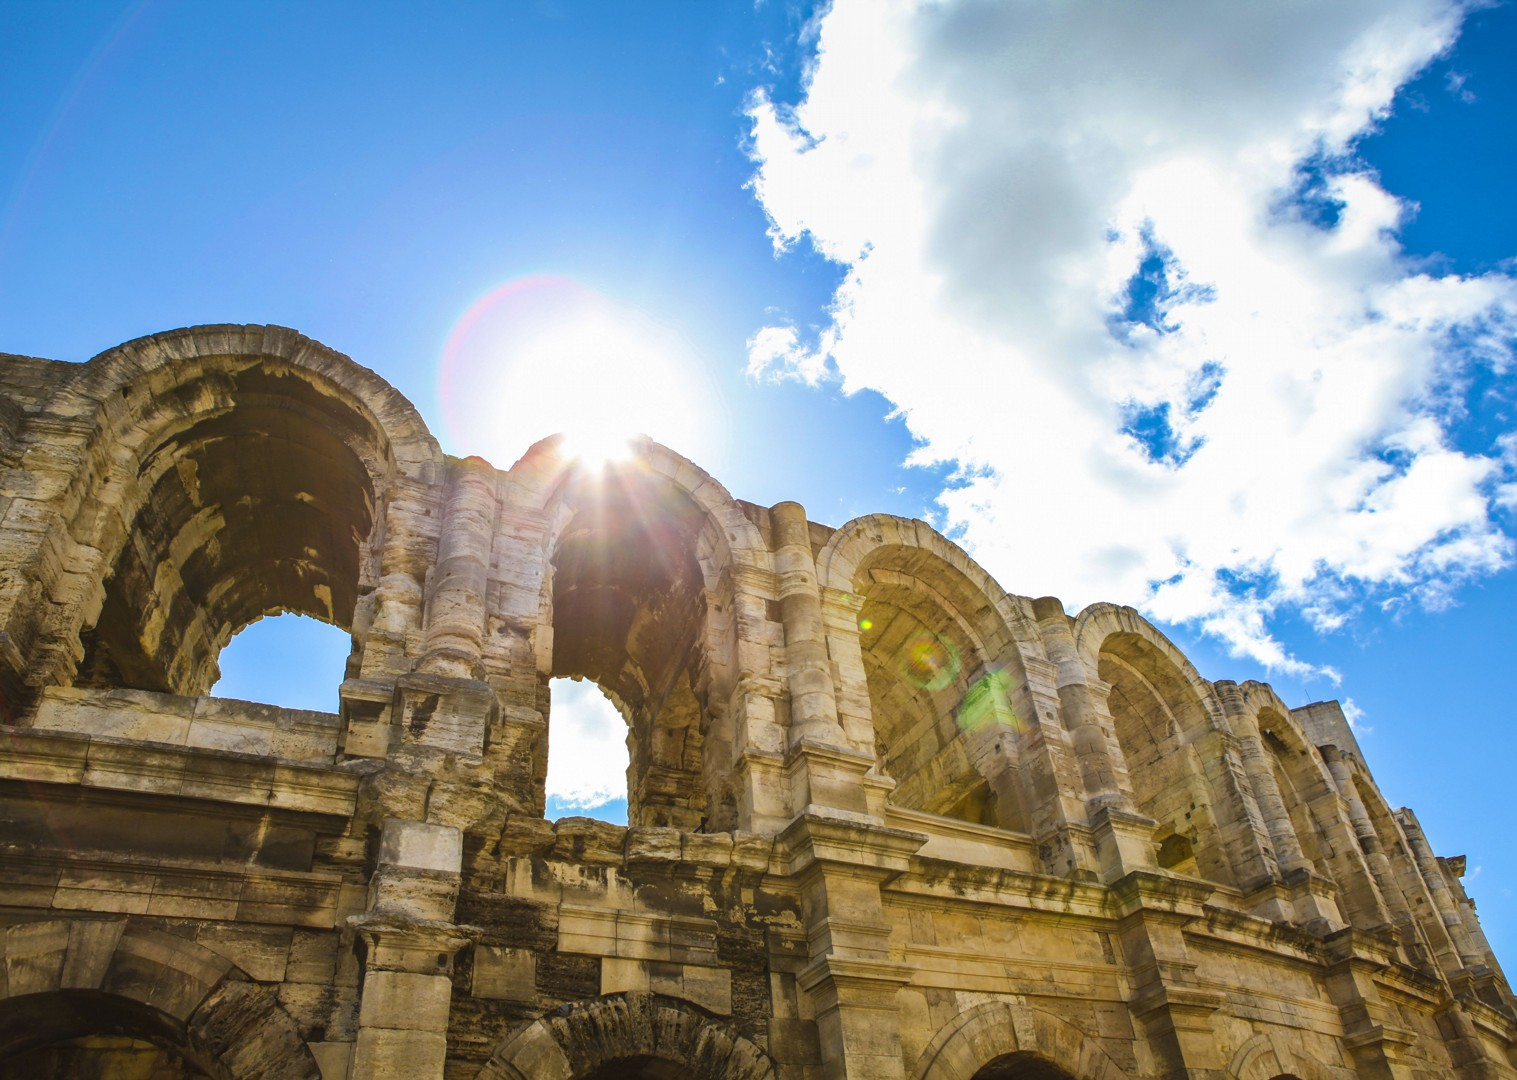 leisure-cycling-tour-arles-amphitheatre-unesco-world-heritage-culture.jpg - France - Provence - Aigues-Mortes to Avignon - Bike and Barge Holiday - Leisure Cycling